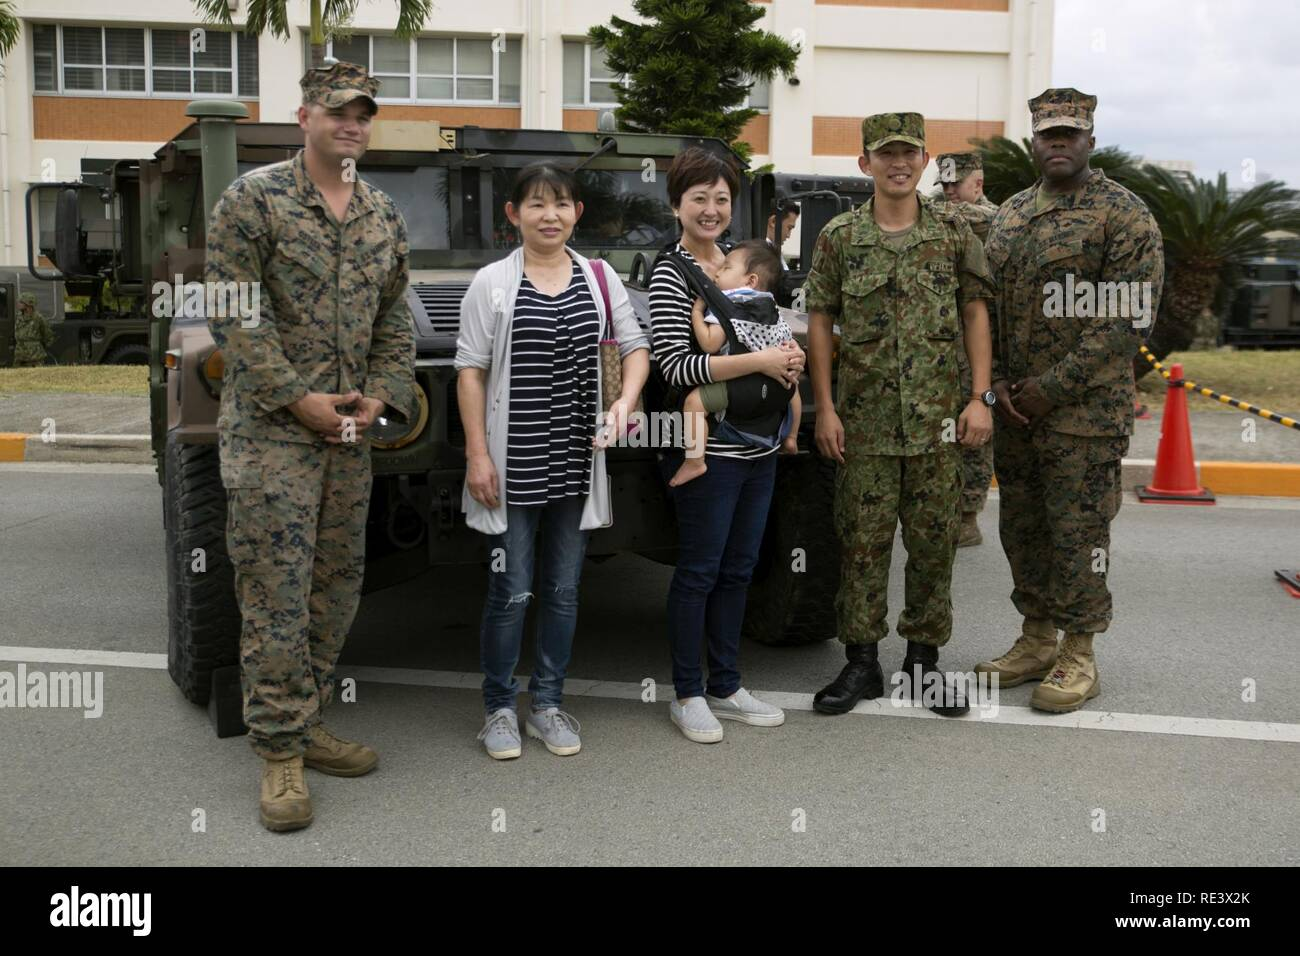 A family poses with Marines and a Japan Ground Self Defense Force service member next to a Humvee Nov. 20, 2016 during the JGSDF Festival on Camp Naha, Okinawa, Japan. The festival celebrated the 6th anniversary of the 15th brigade and the 44th anniversary of Camp Naha. Marines with Combat Assault Battalion, 3rd Marine Division, III Marine Expeditionary Force brought the Humvee, a Light Armored Vehicle and an Assault Amphibious Vehicle for display. Attendees of the festival were able to take photos with the Marines and their vehicles. Stock Photo